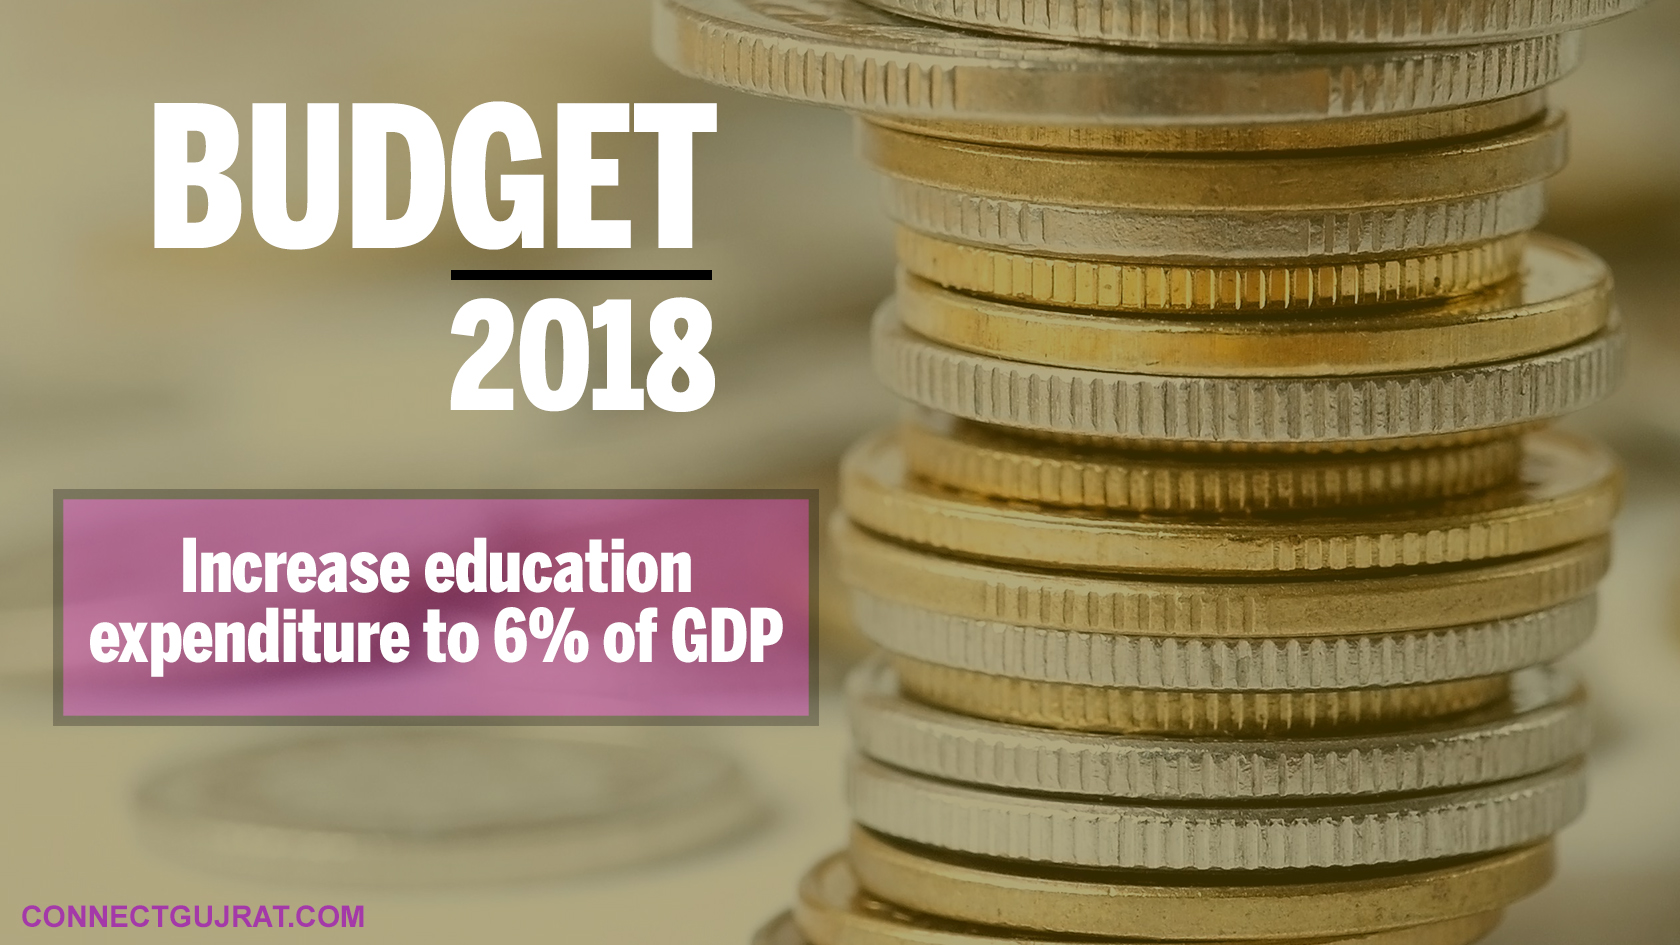 Budget 2018: Increase education expenditure to 6% of GDP